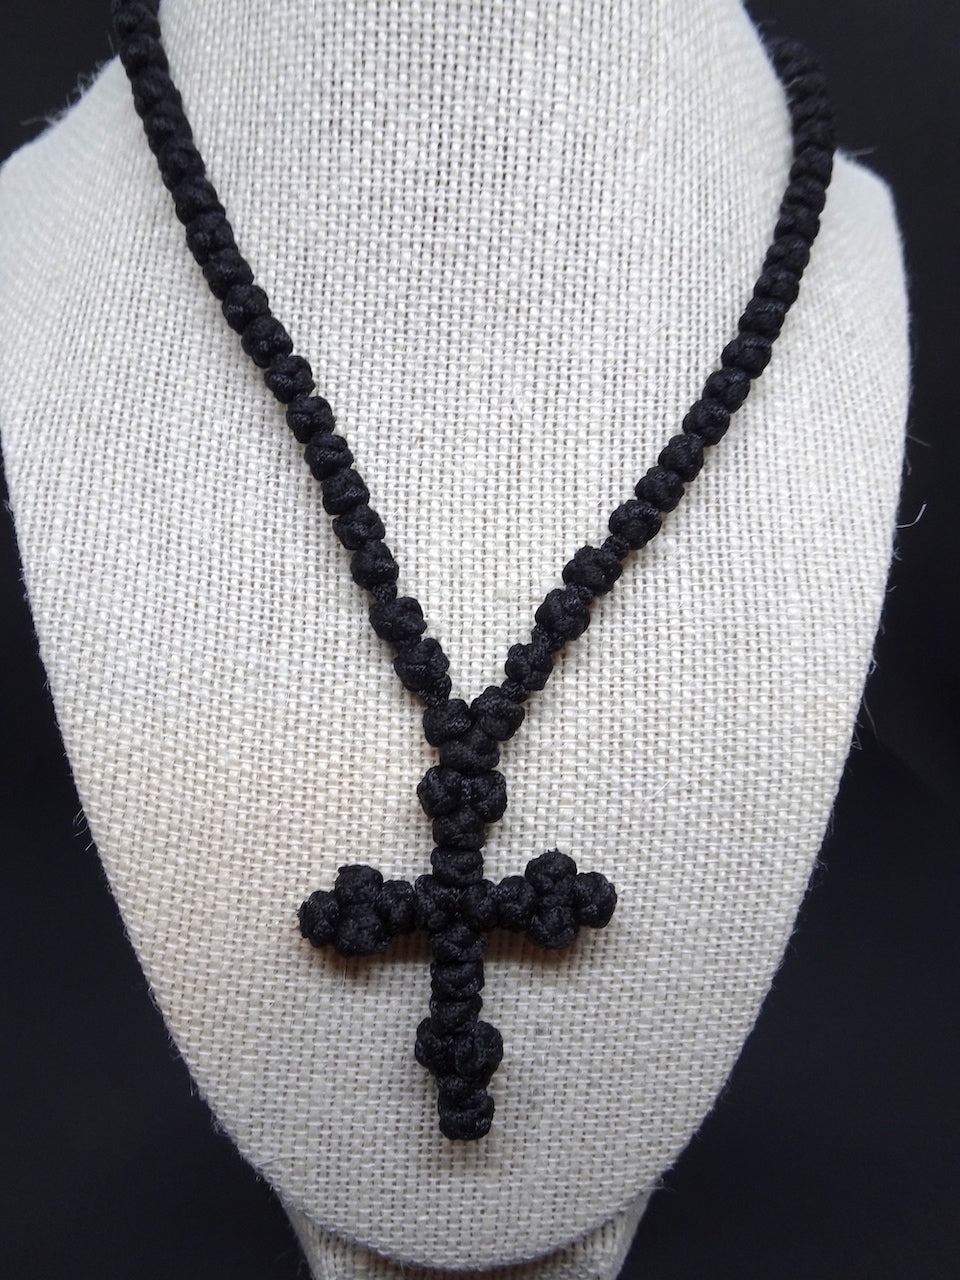 Handmade Orthodox prayer rope with 100 knots in black color